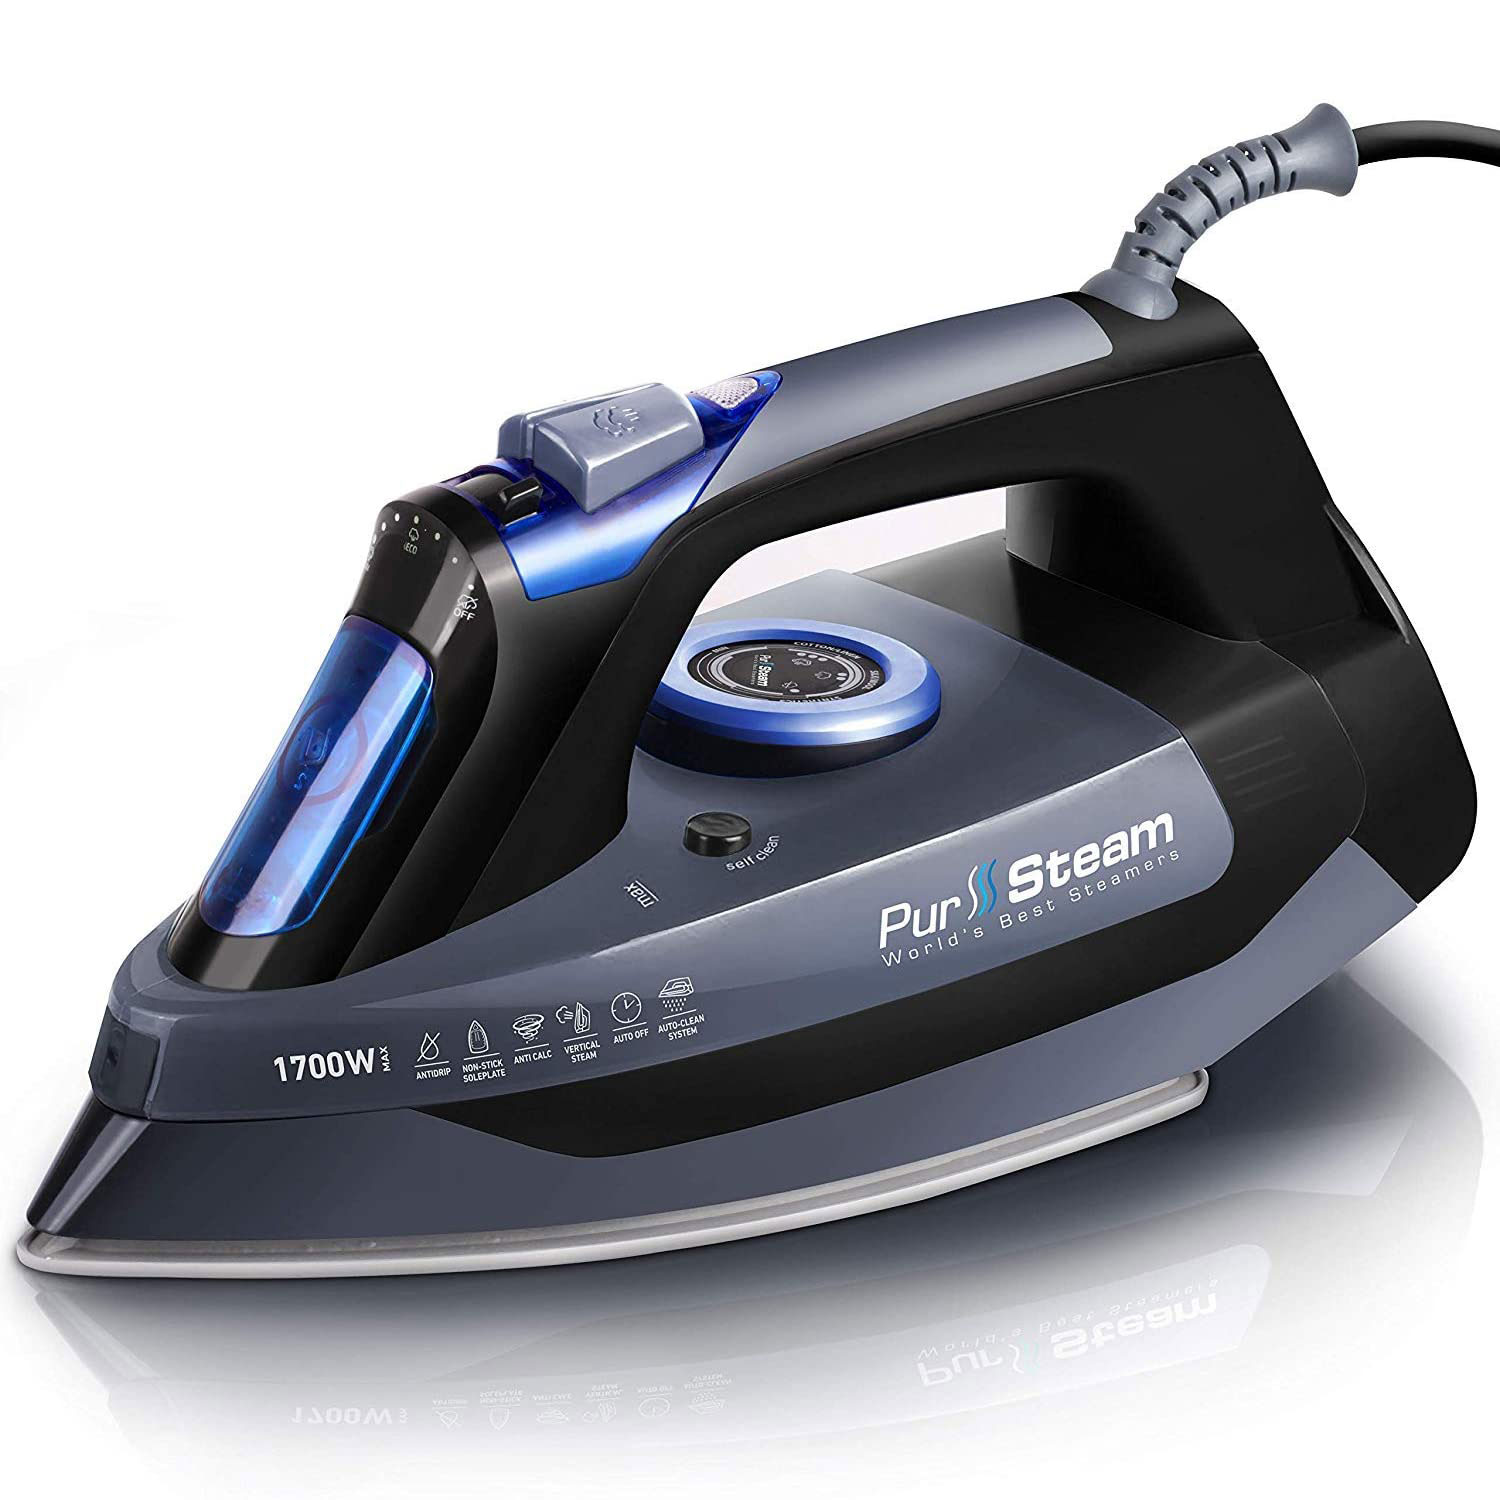 Steam Iron for Clothes Compact Size with Ceramic Soleplate Light-Weight Medium